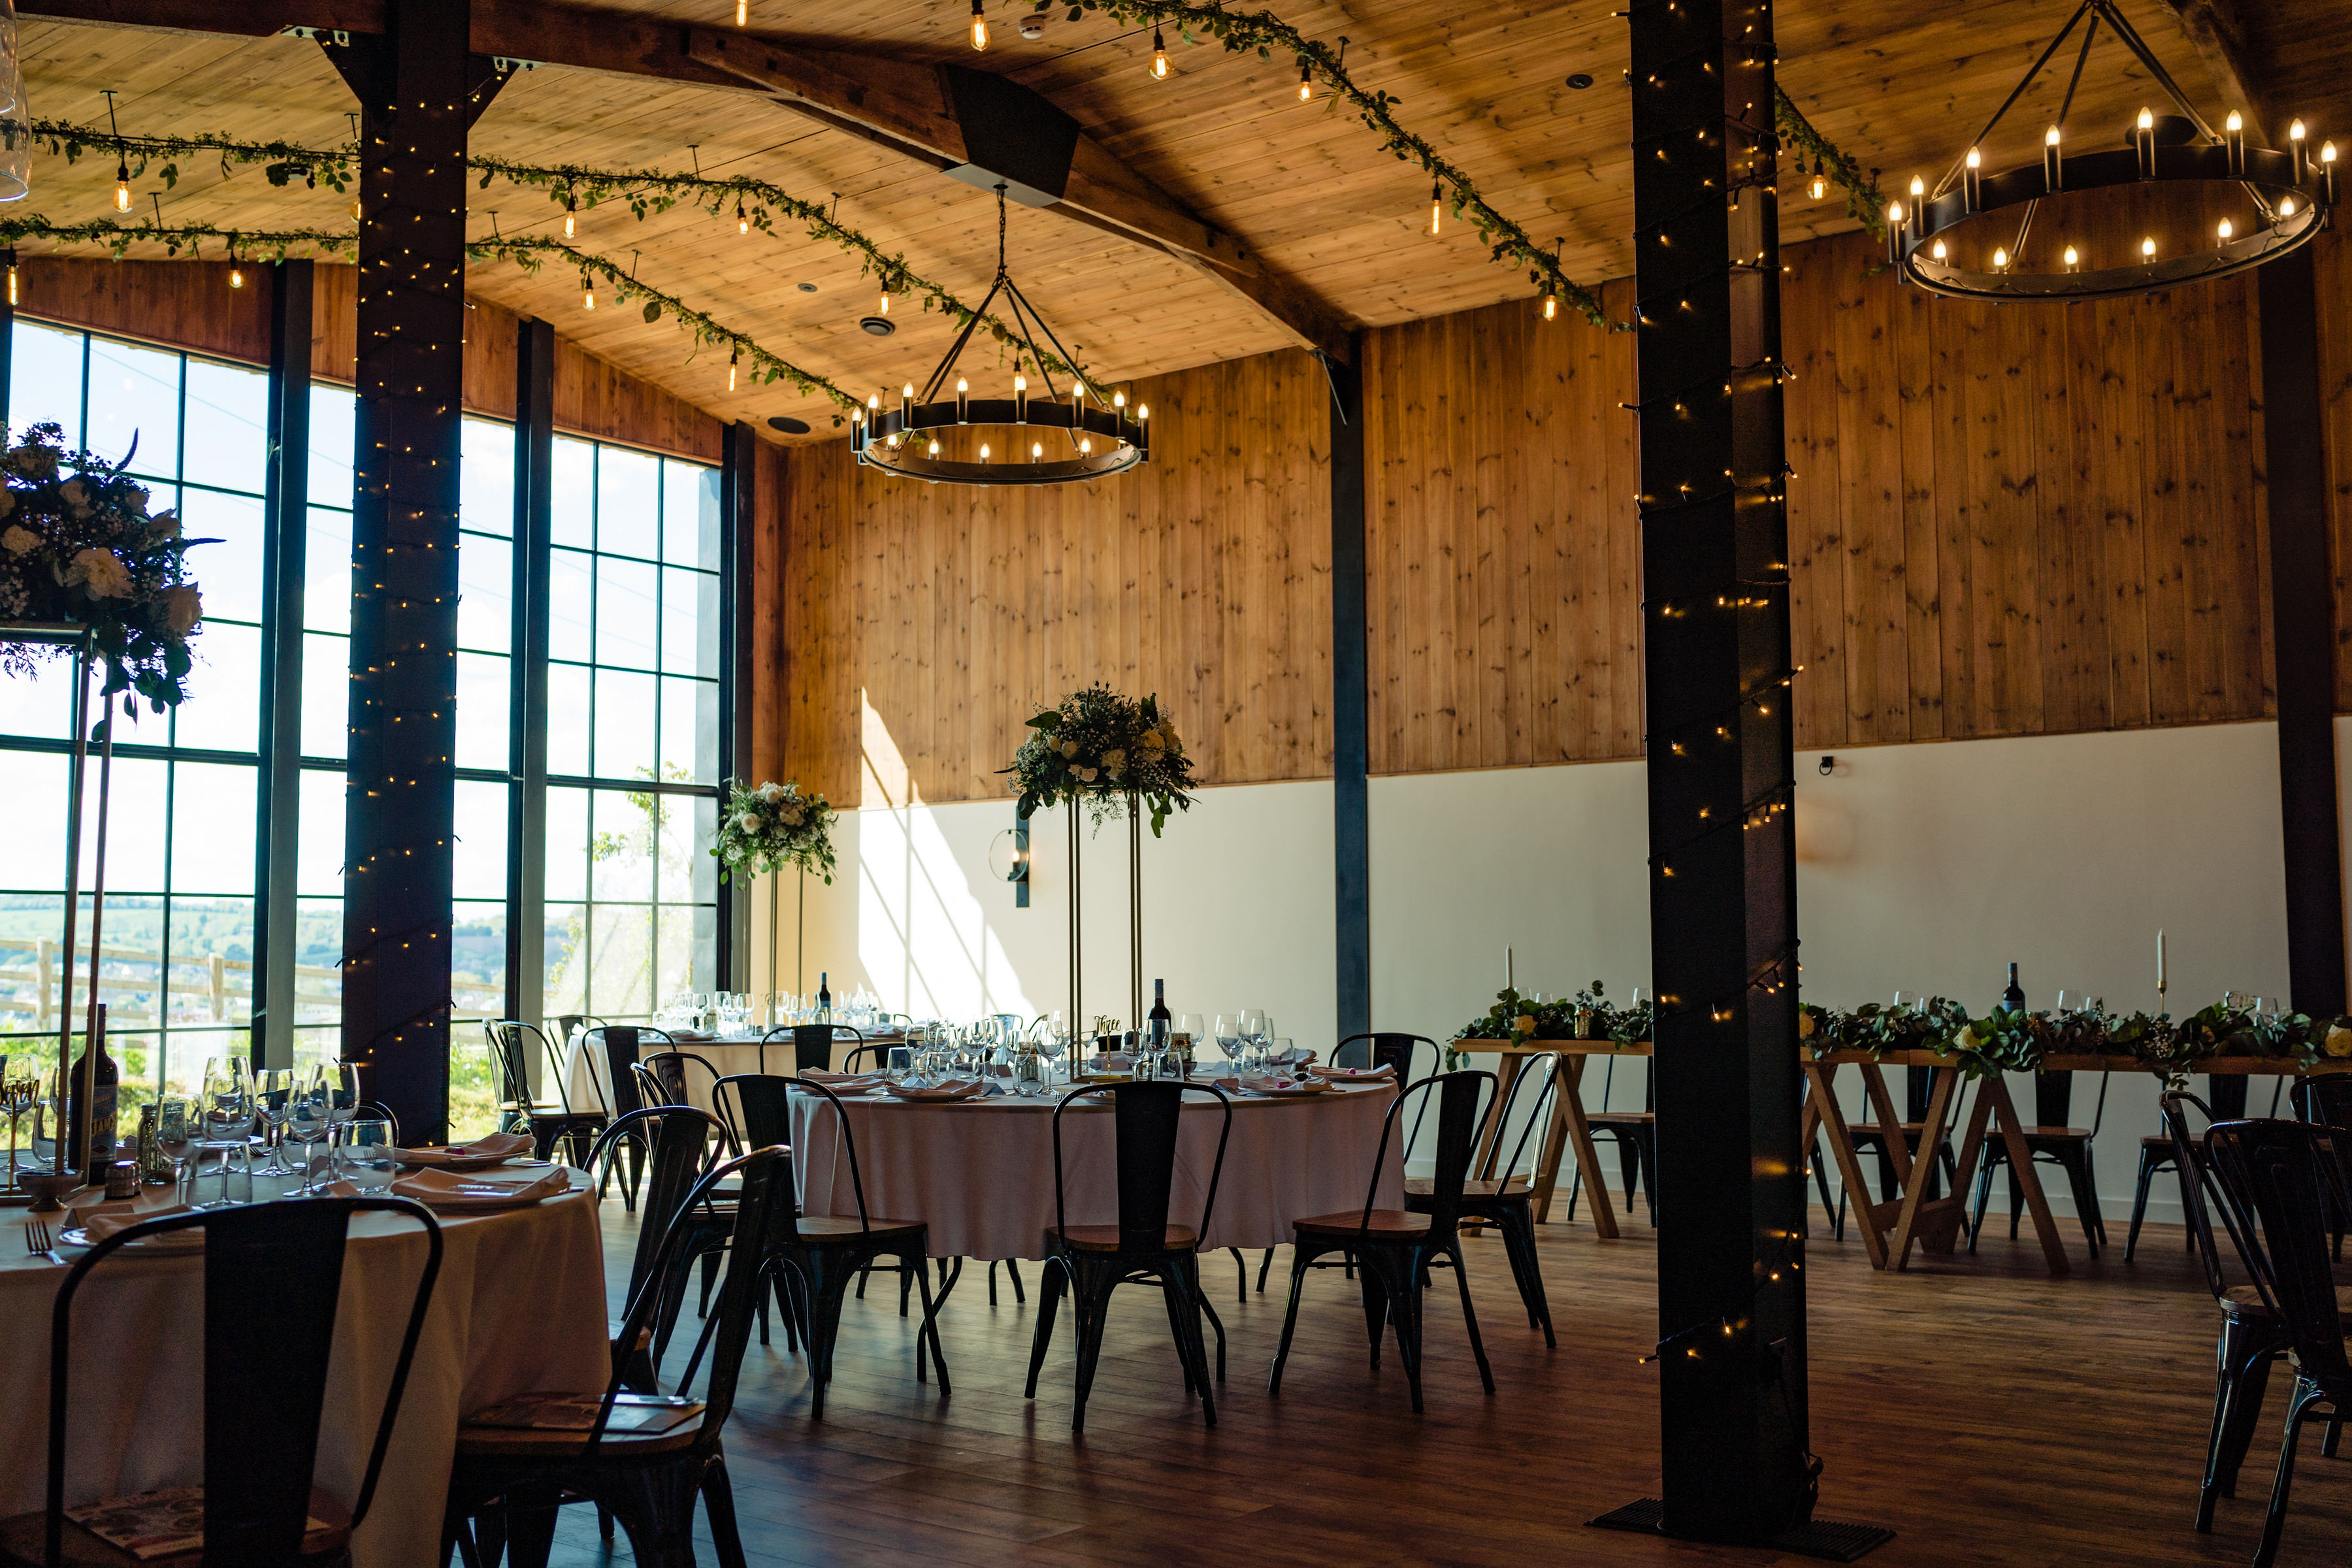 The Stable Barn set up for a Wedding Breakfast with light pouring through the large glass window